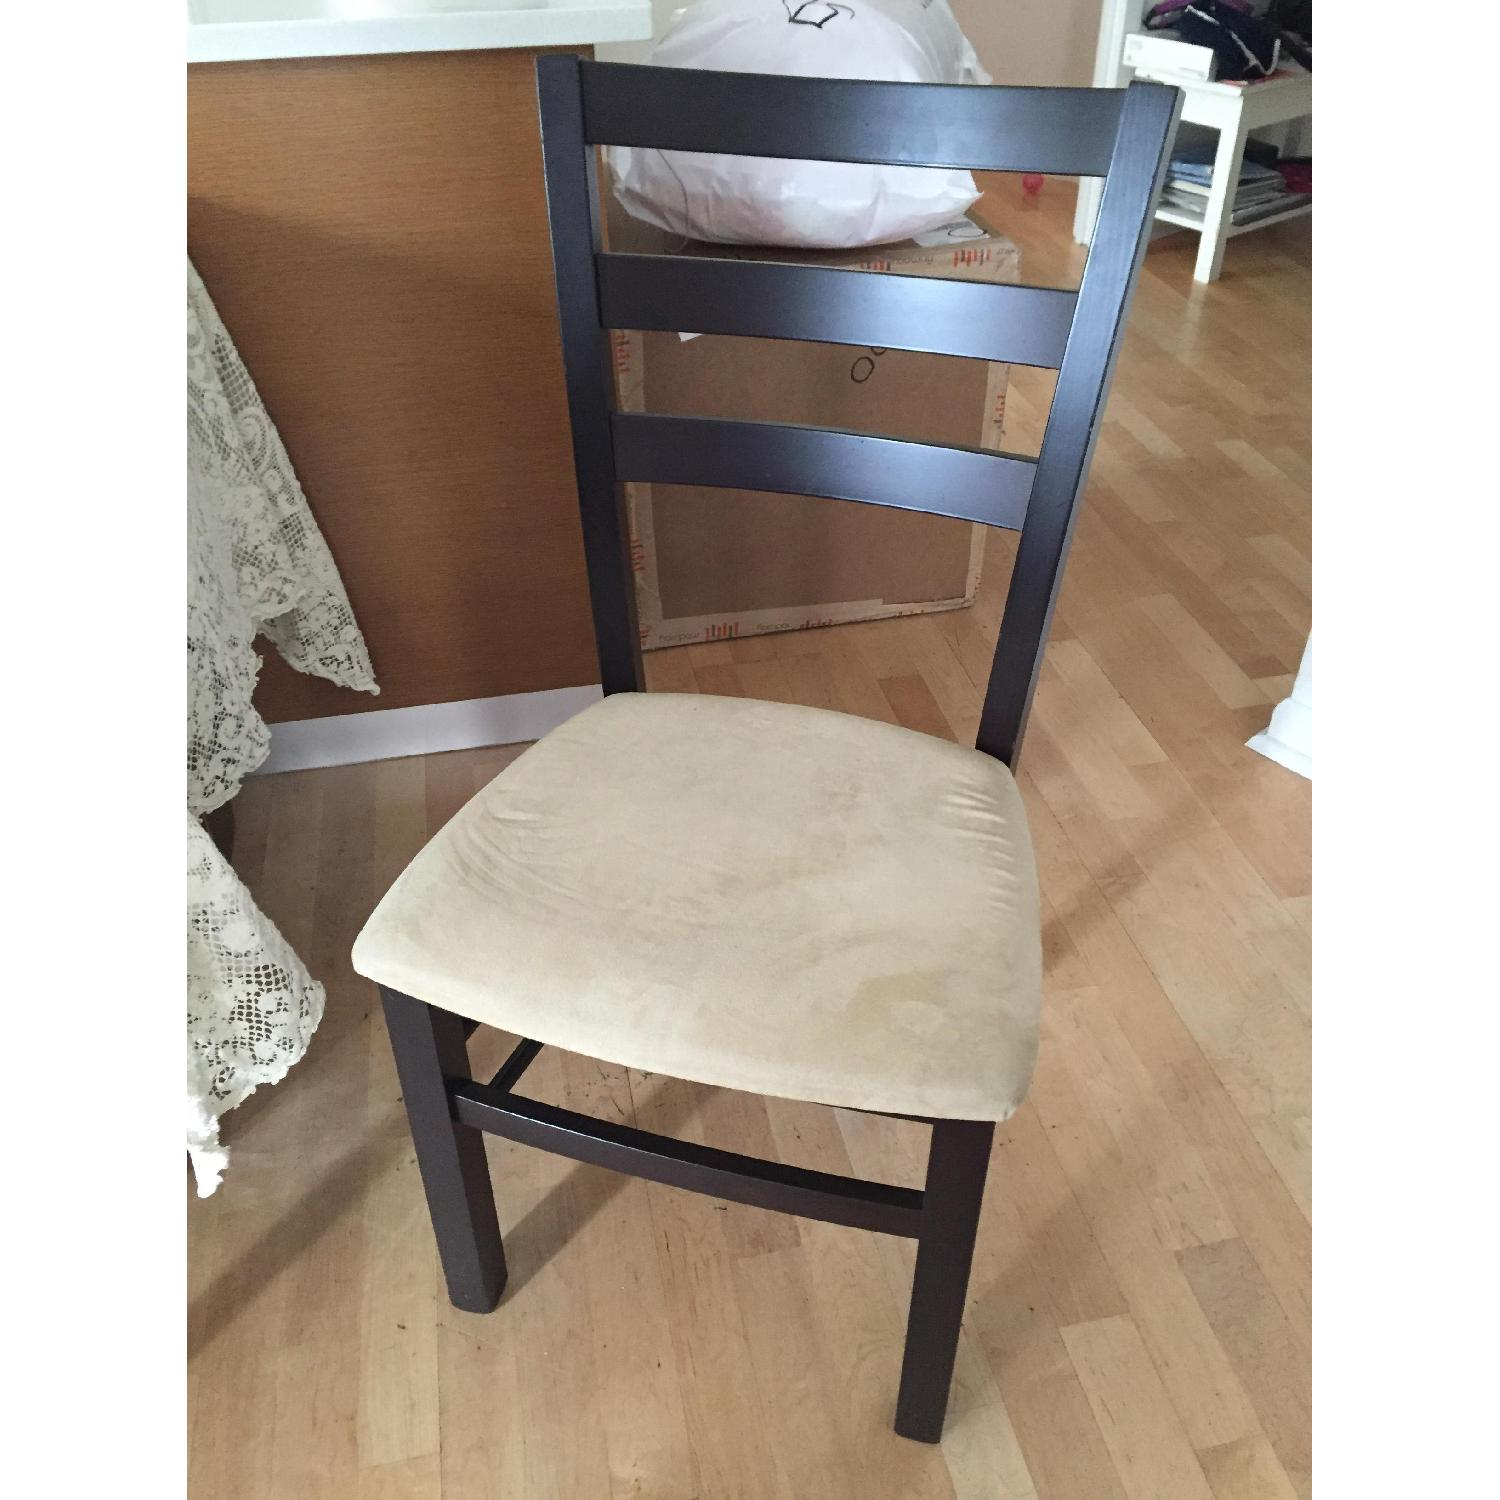 Macy's Wood & Tan Suede Dining Chairs - image-2